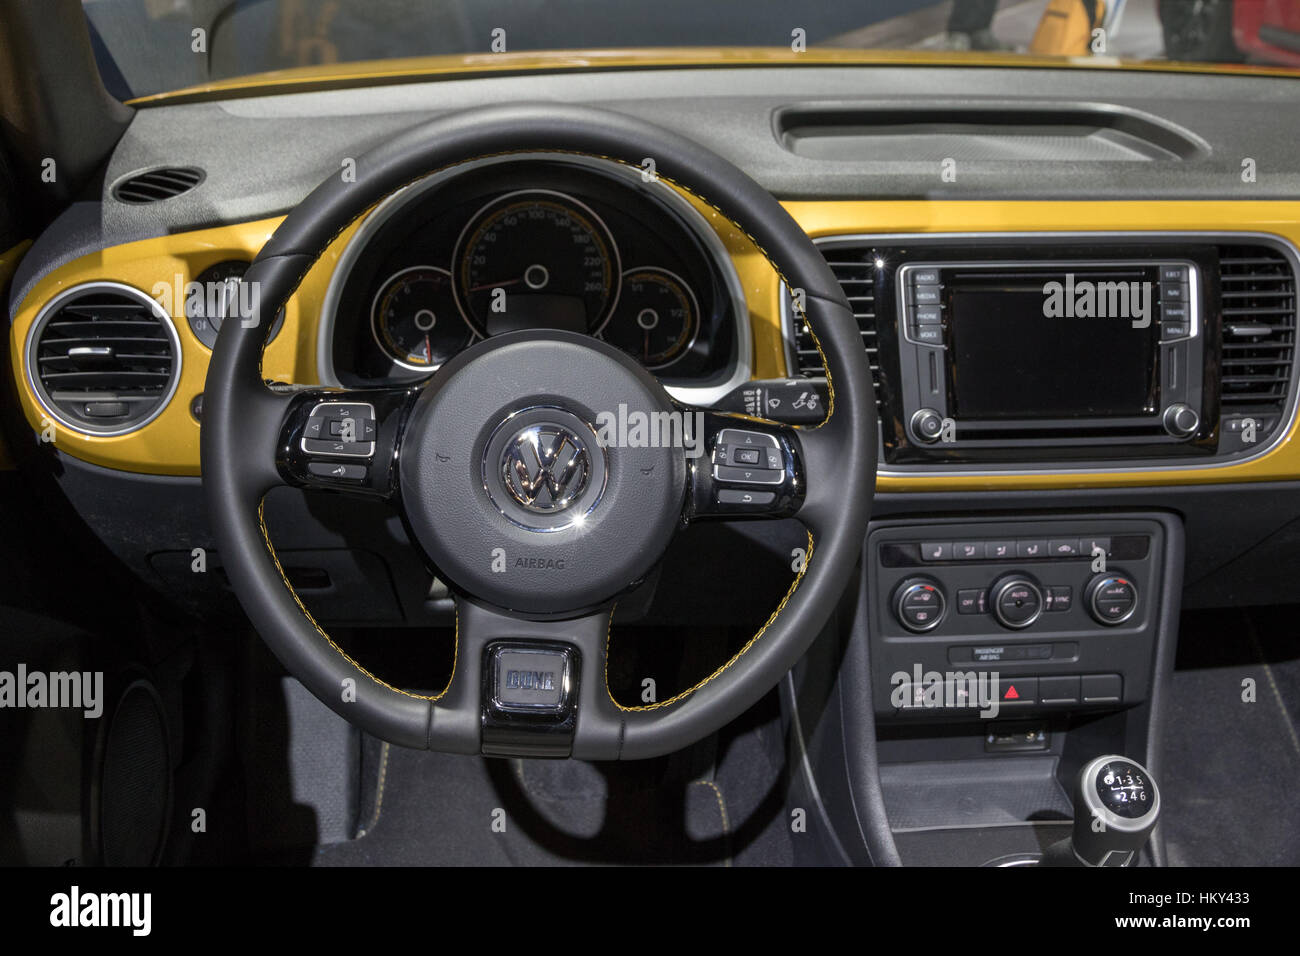 Volkswagen Beetle Cabrio Stock Photos 1960 Interior Brussels Jan 19 2017 Dashboard Vw On Display At The